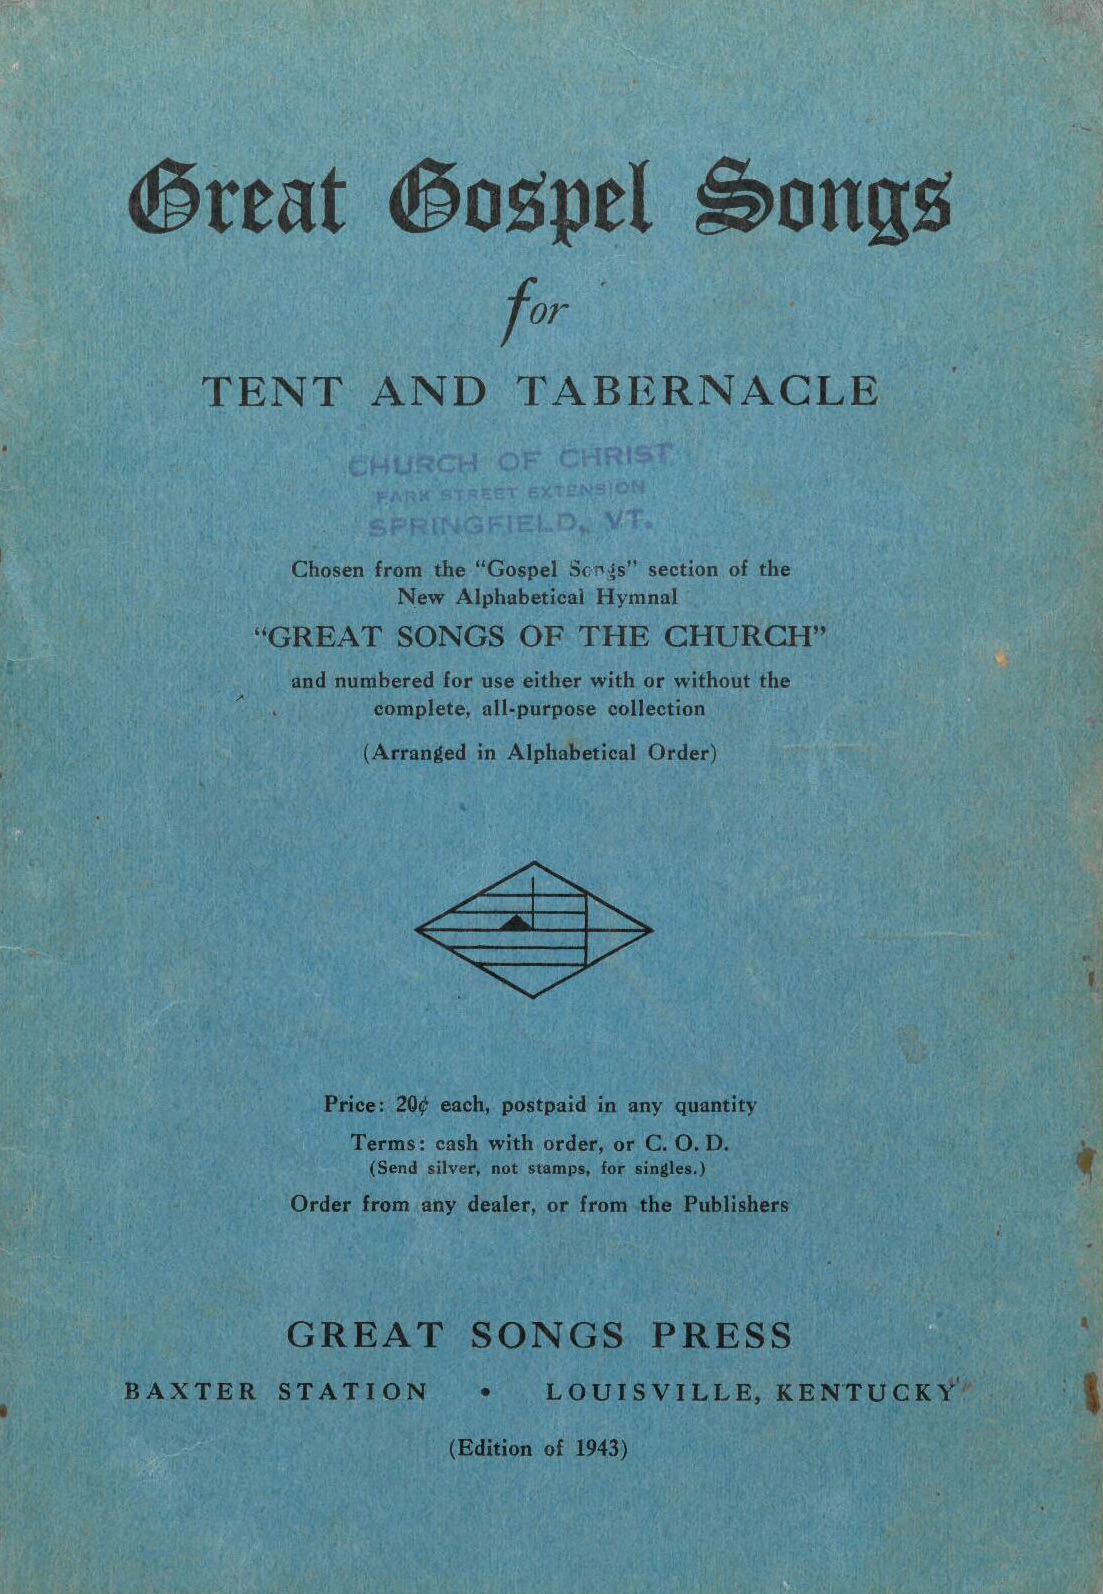 Great Gospel Songs for Tent and Tabernacle. Great Songs Press: Louisville, 1943. Front cover.